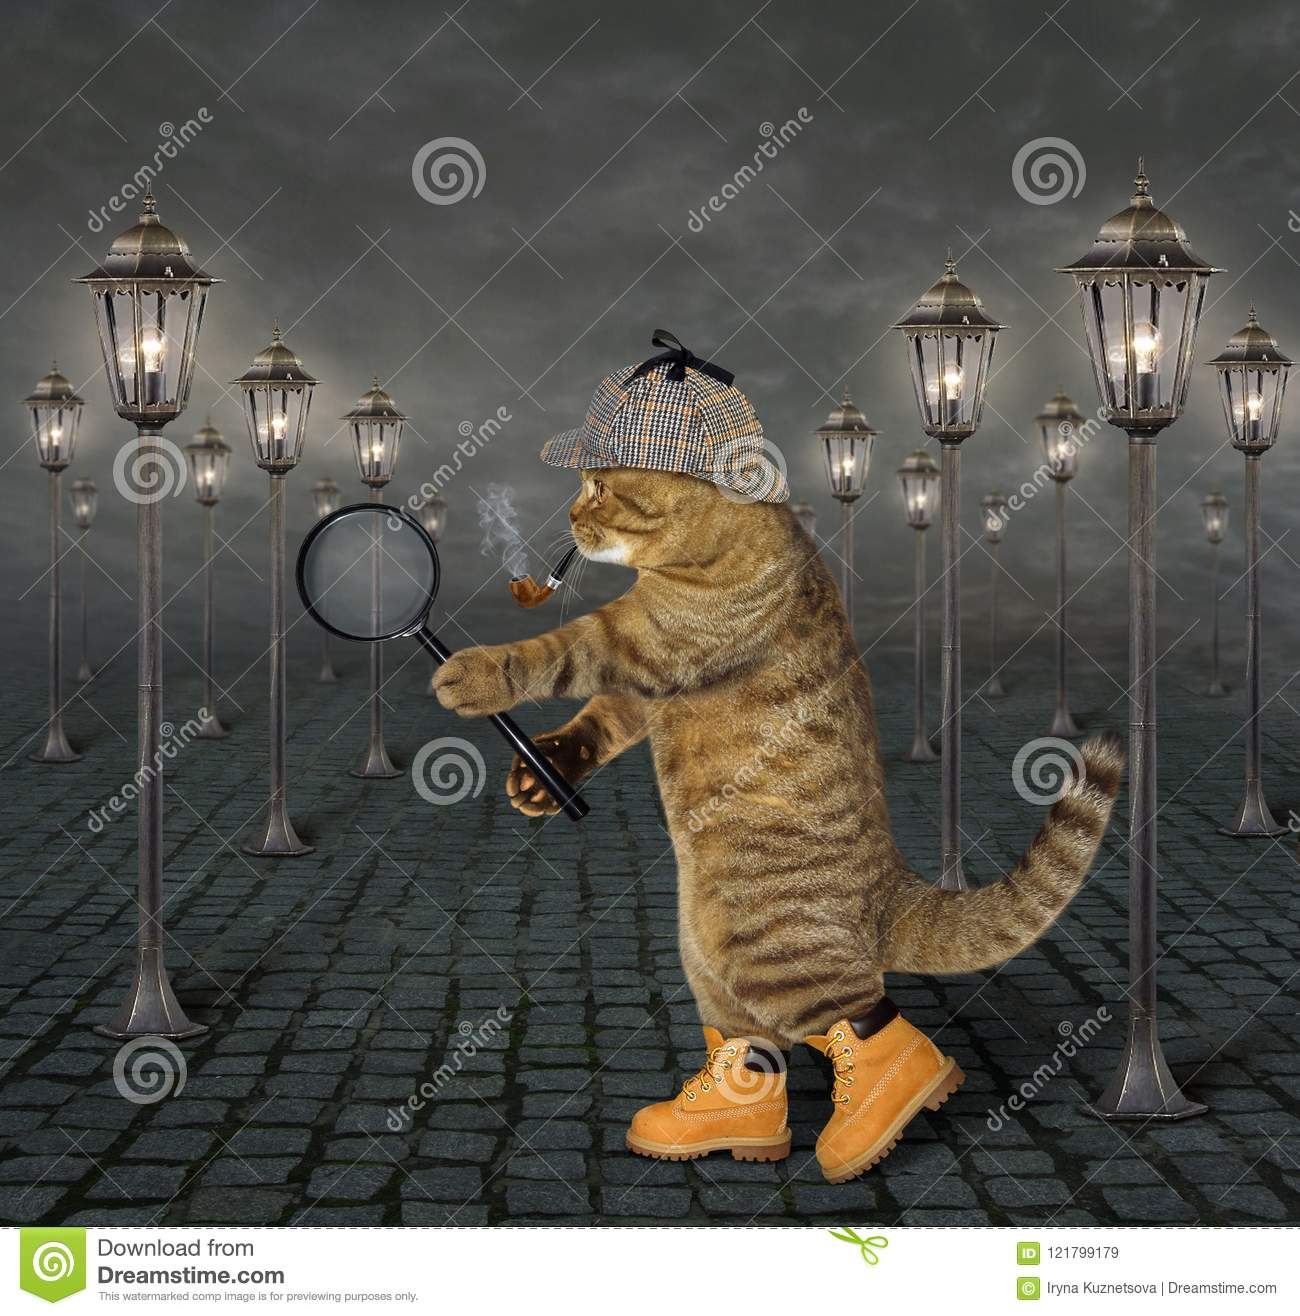 Cat with magnifying glass 2